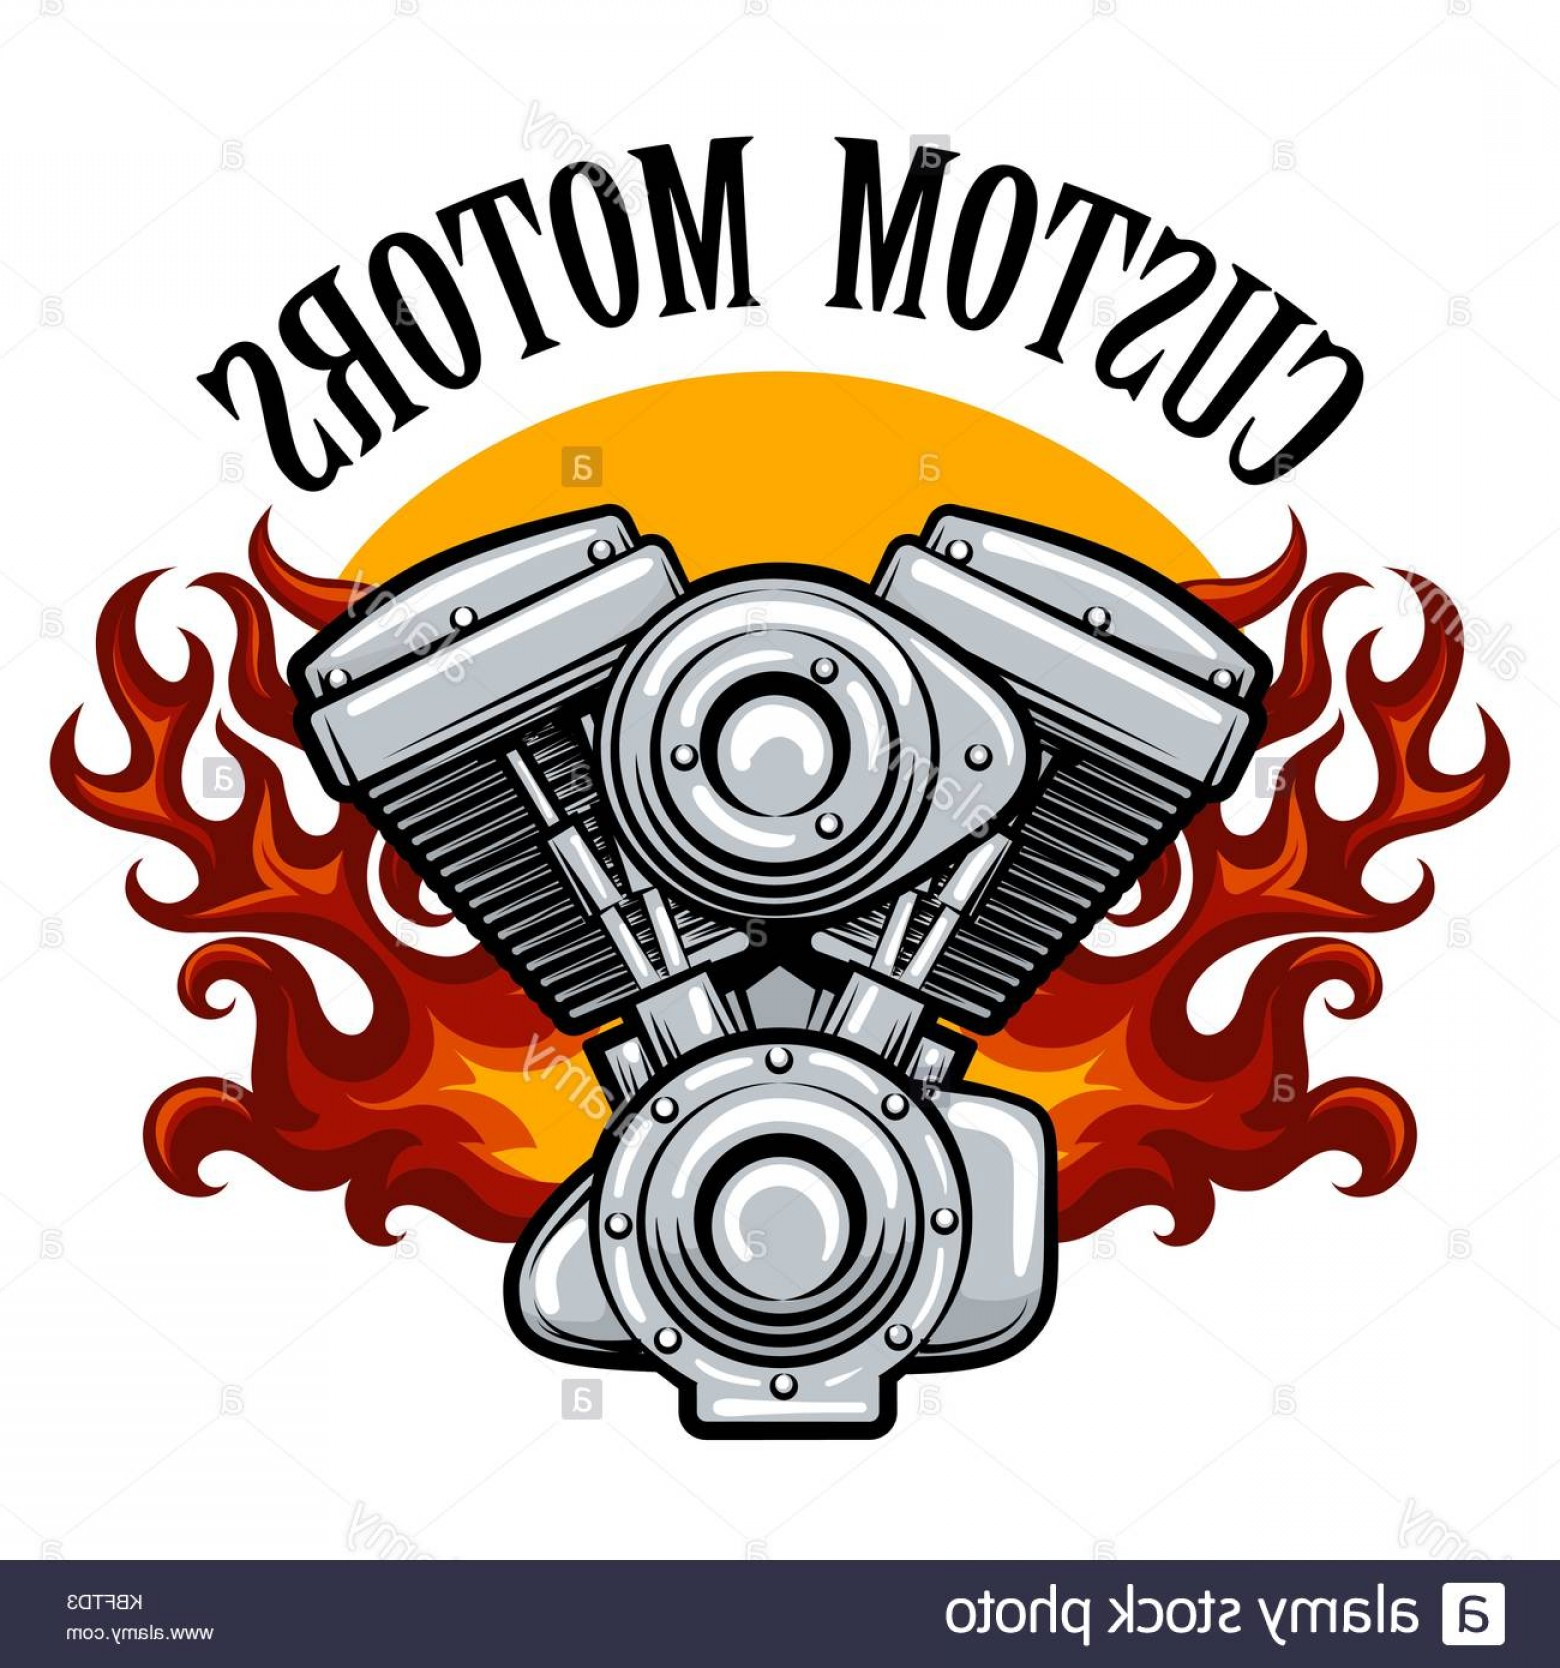 Motorcycle Club Vector: Stock Image Bikers Racing Team Motorcycle Club Or Motorcycle Service Badge With